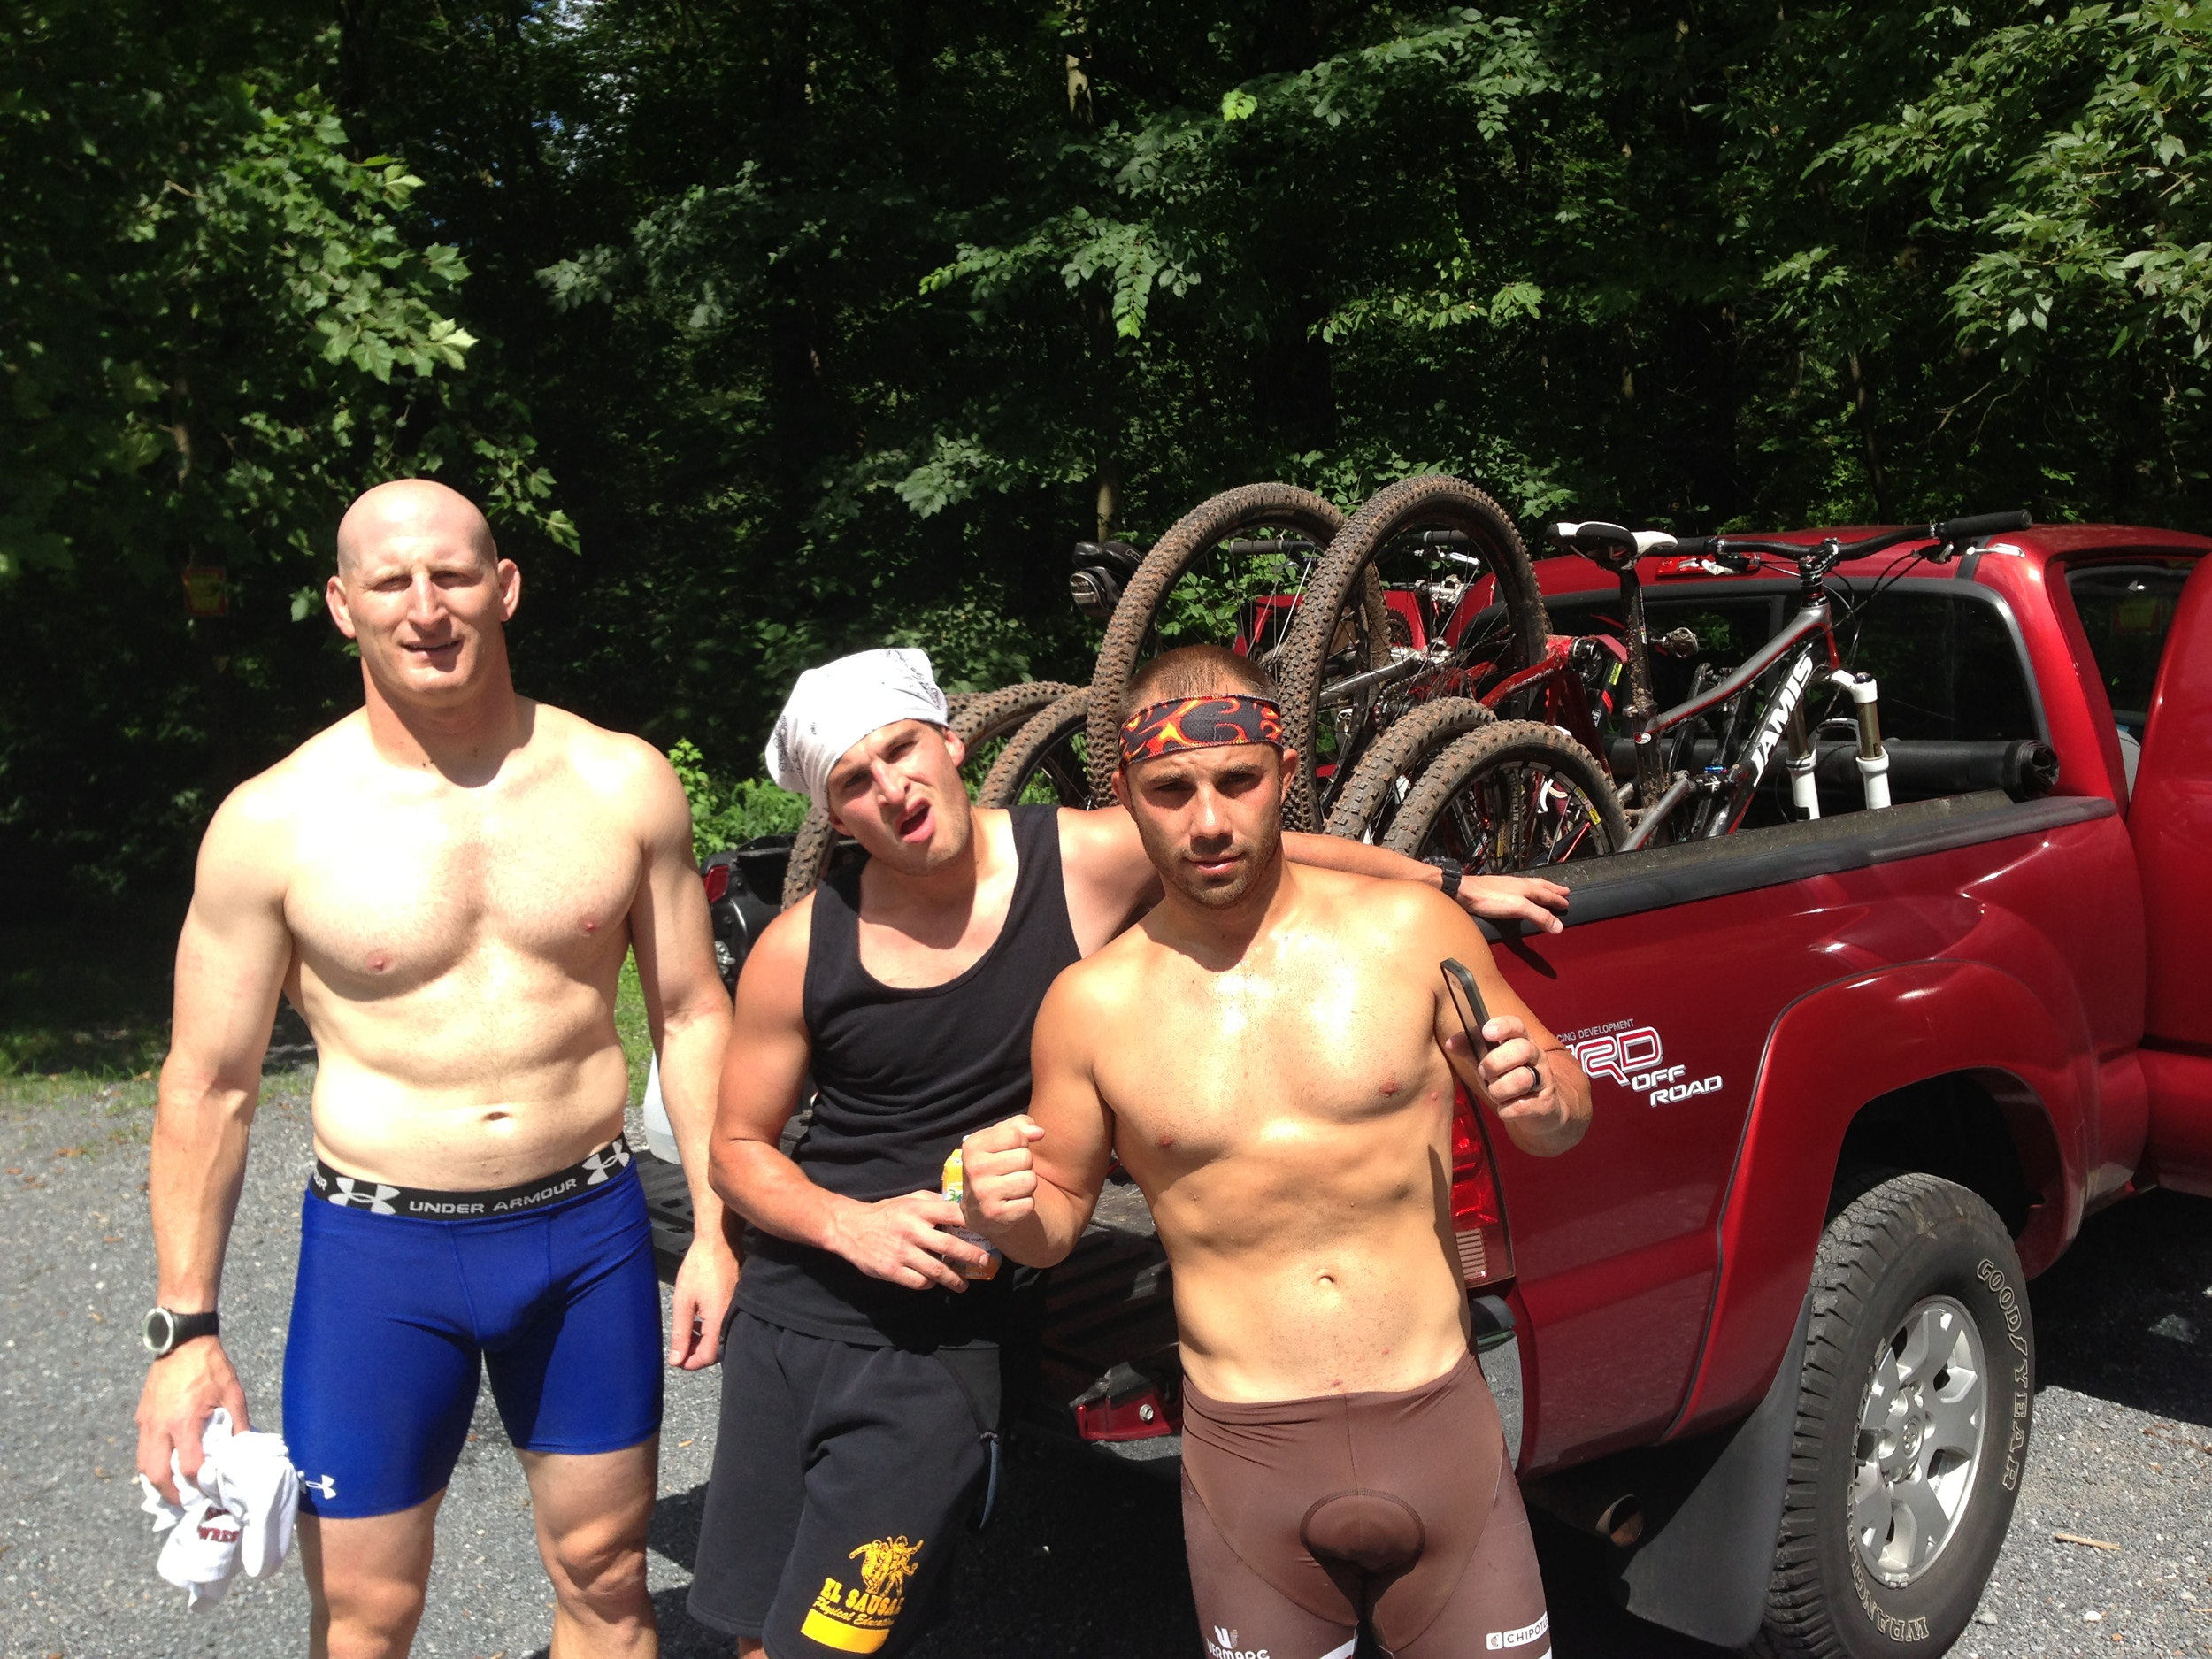 """The Boys (left to right)  Ryan """"Ol' Roy"""" Cummins, AJ """"The Iceman"""" Akerman, and with his best weigh-in pose - Justin """"Just In Case"""" Kast"""